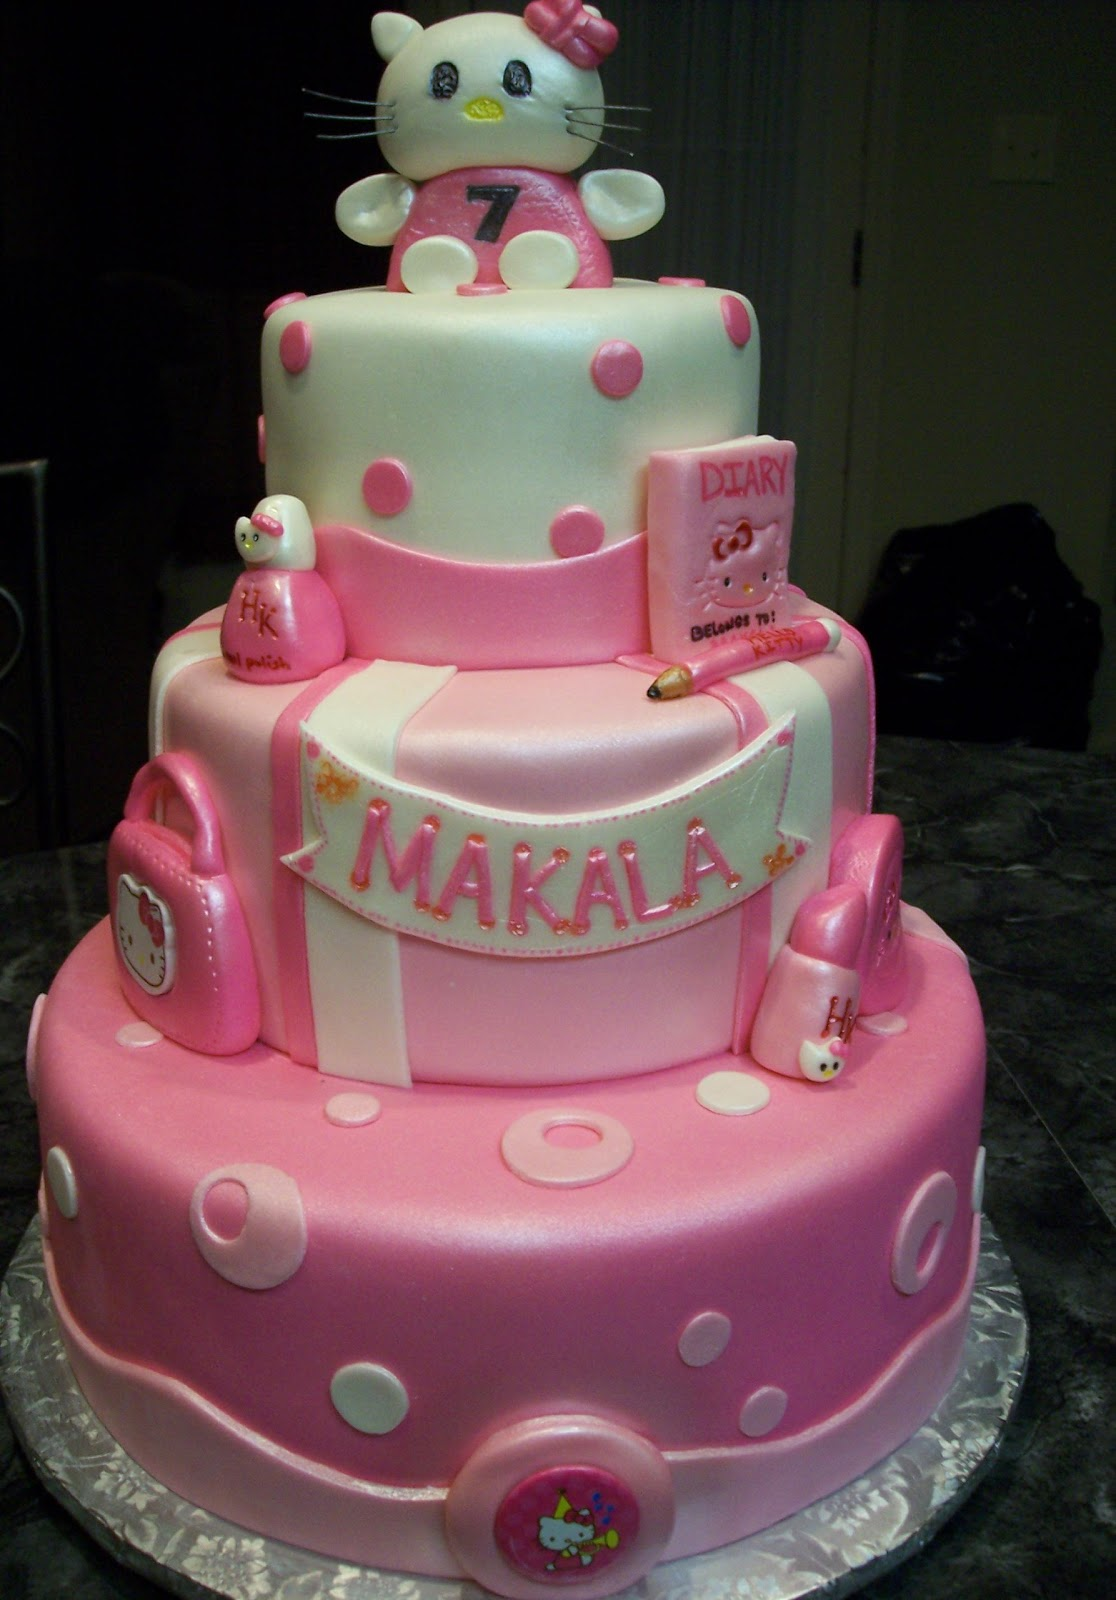 Mymonicakes Hello Kitty Cake With Gum Paste Topper And